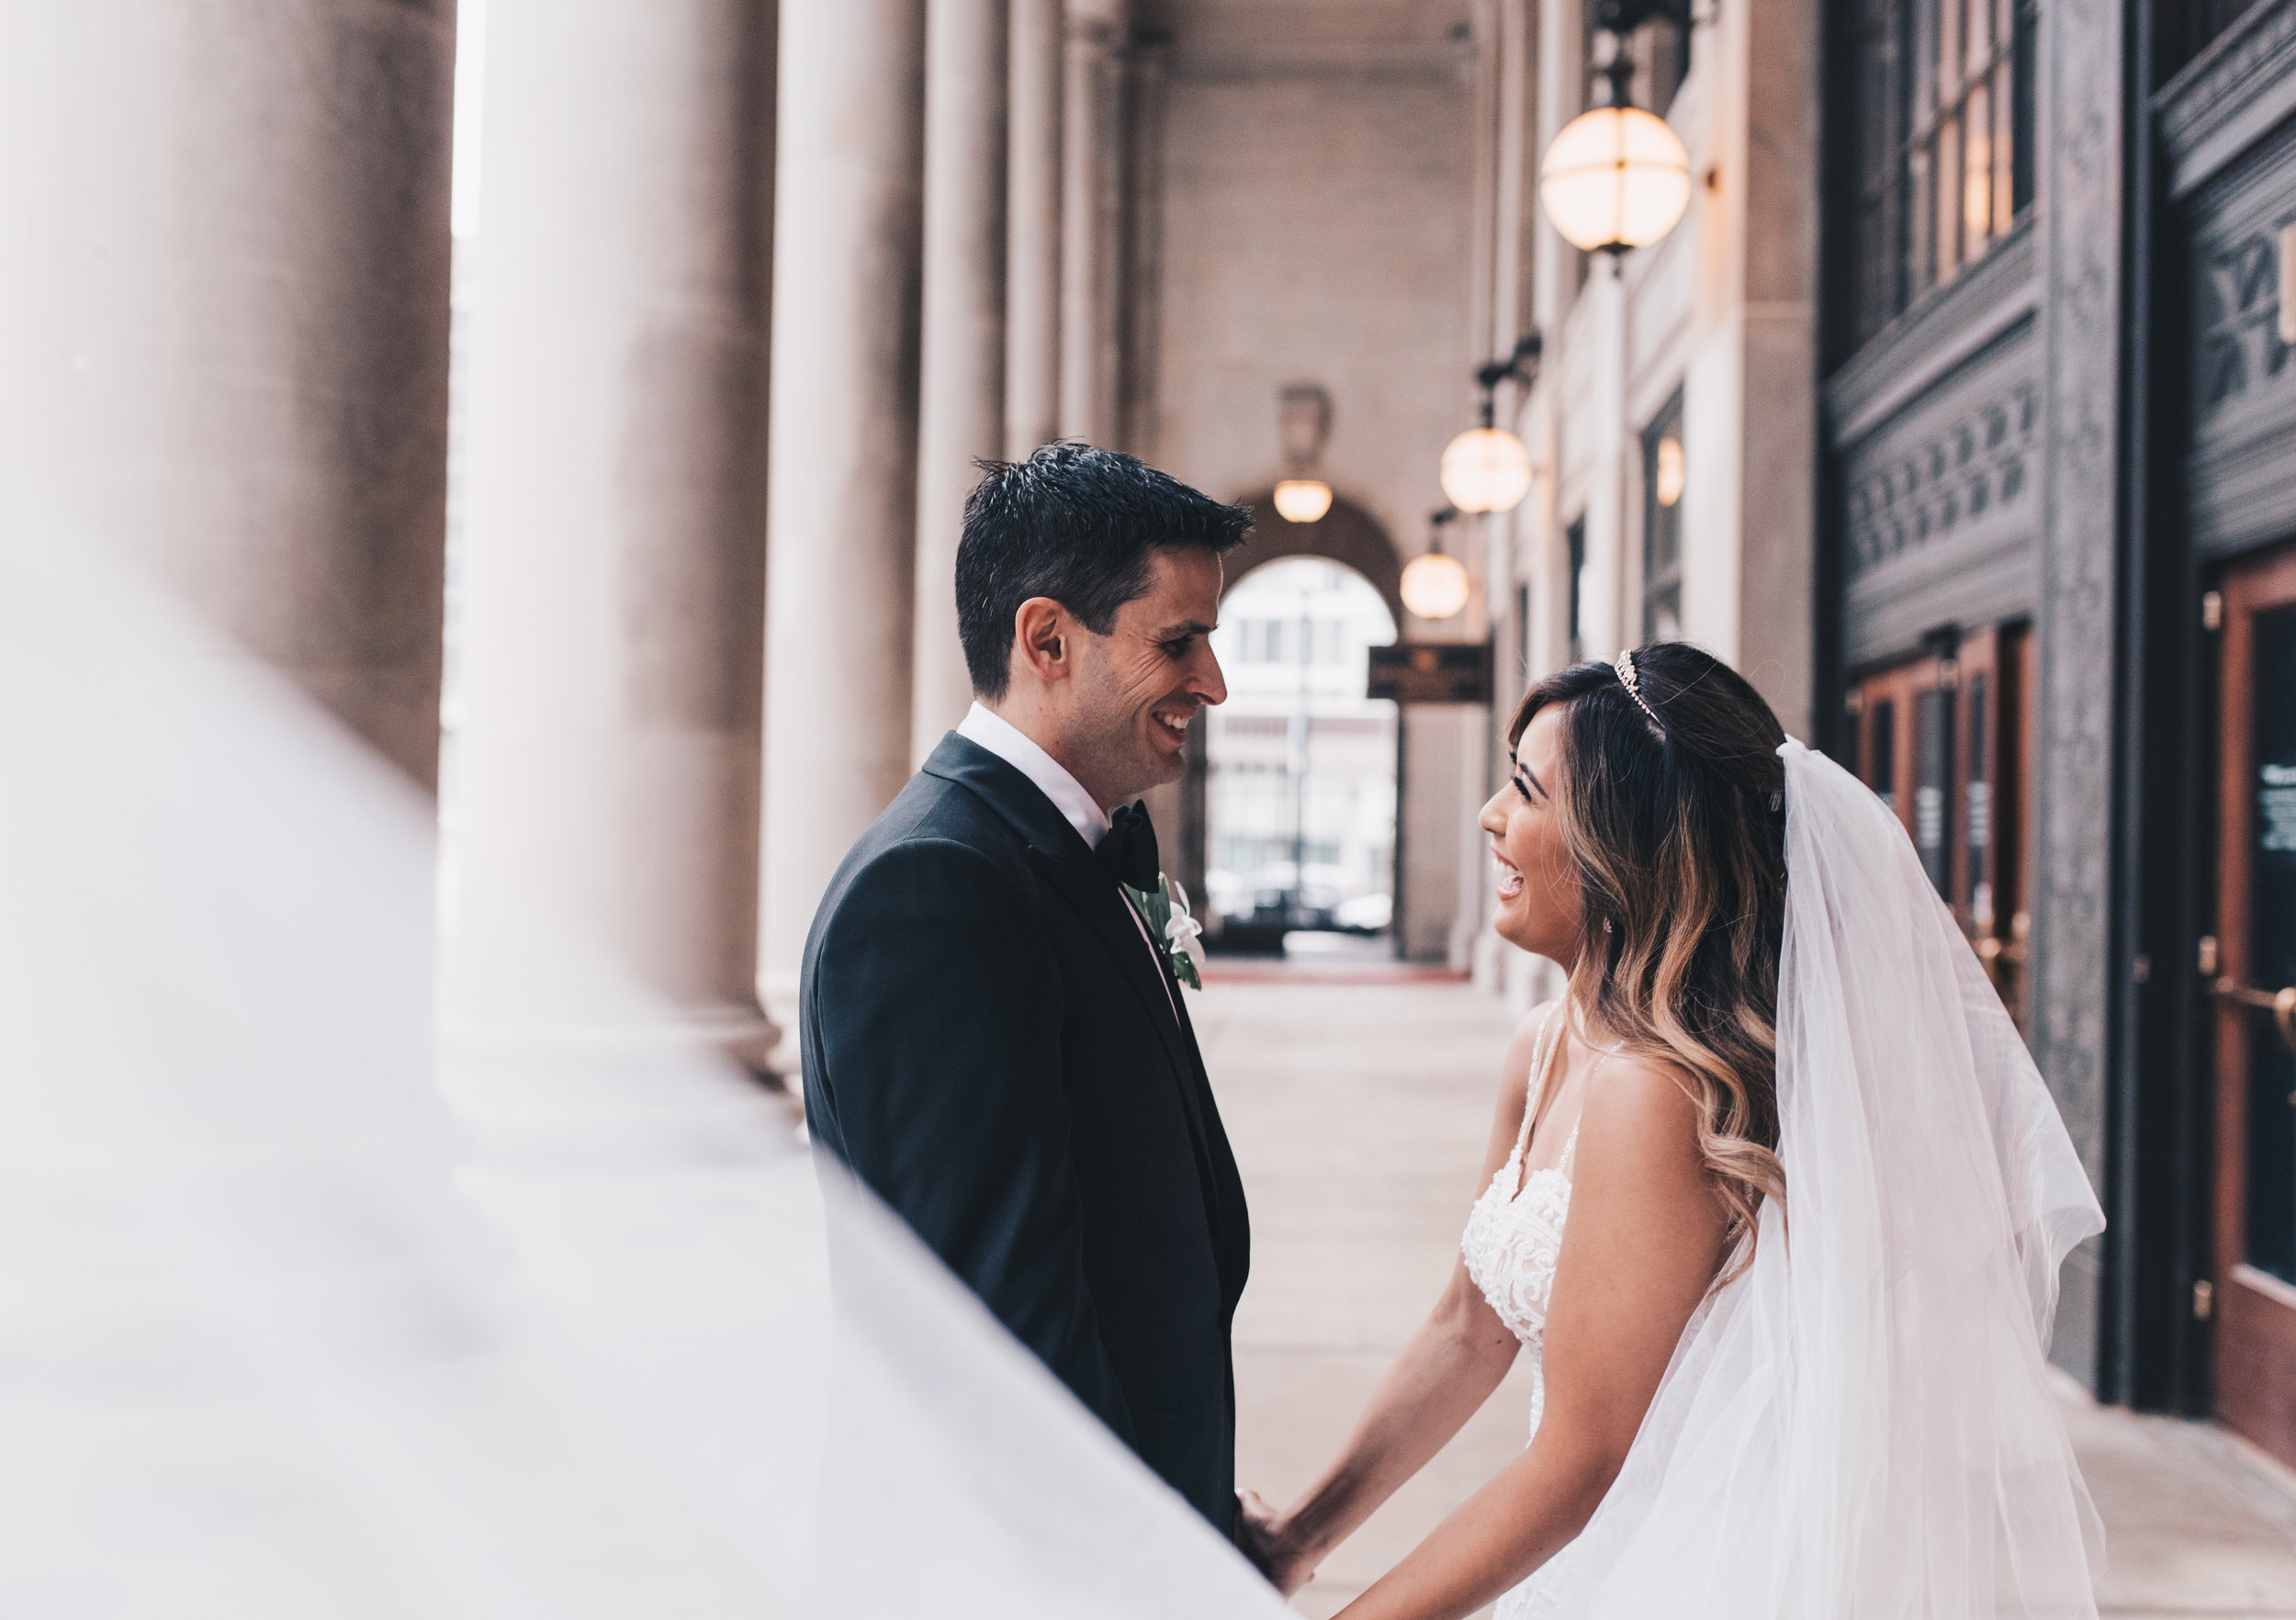 Chicago Bride and Groom Photos, Chicago Wedding, Chicago Wedding Photographer, Chicago Elopement Photographer, Chicago Bride and Groom Photos, Union Station, Union Station Wedding Photos